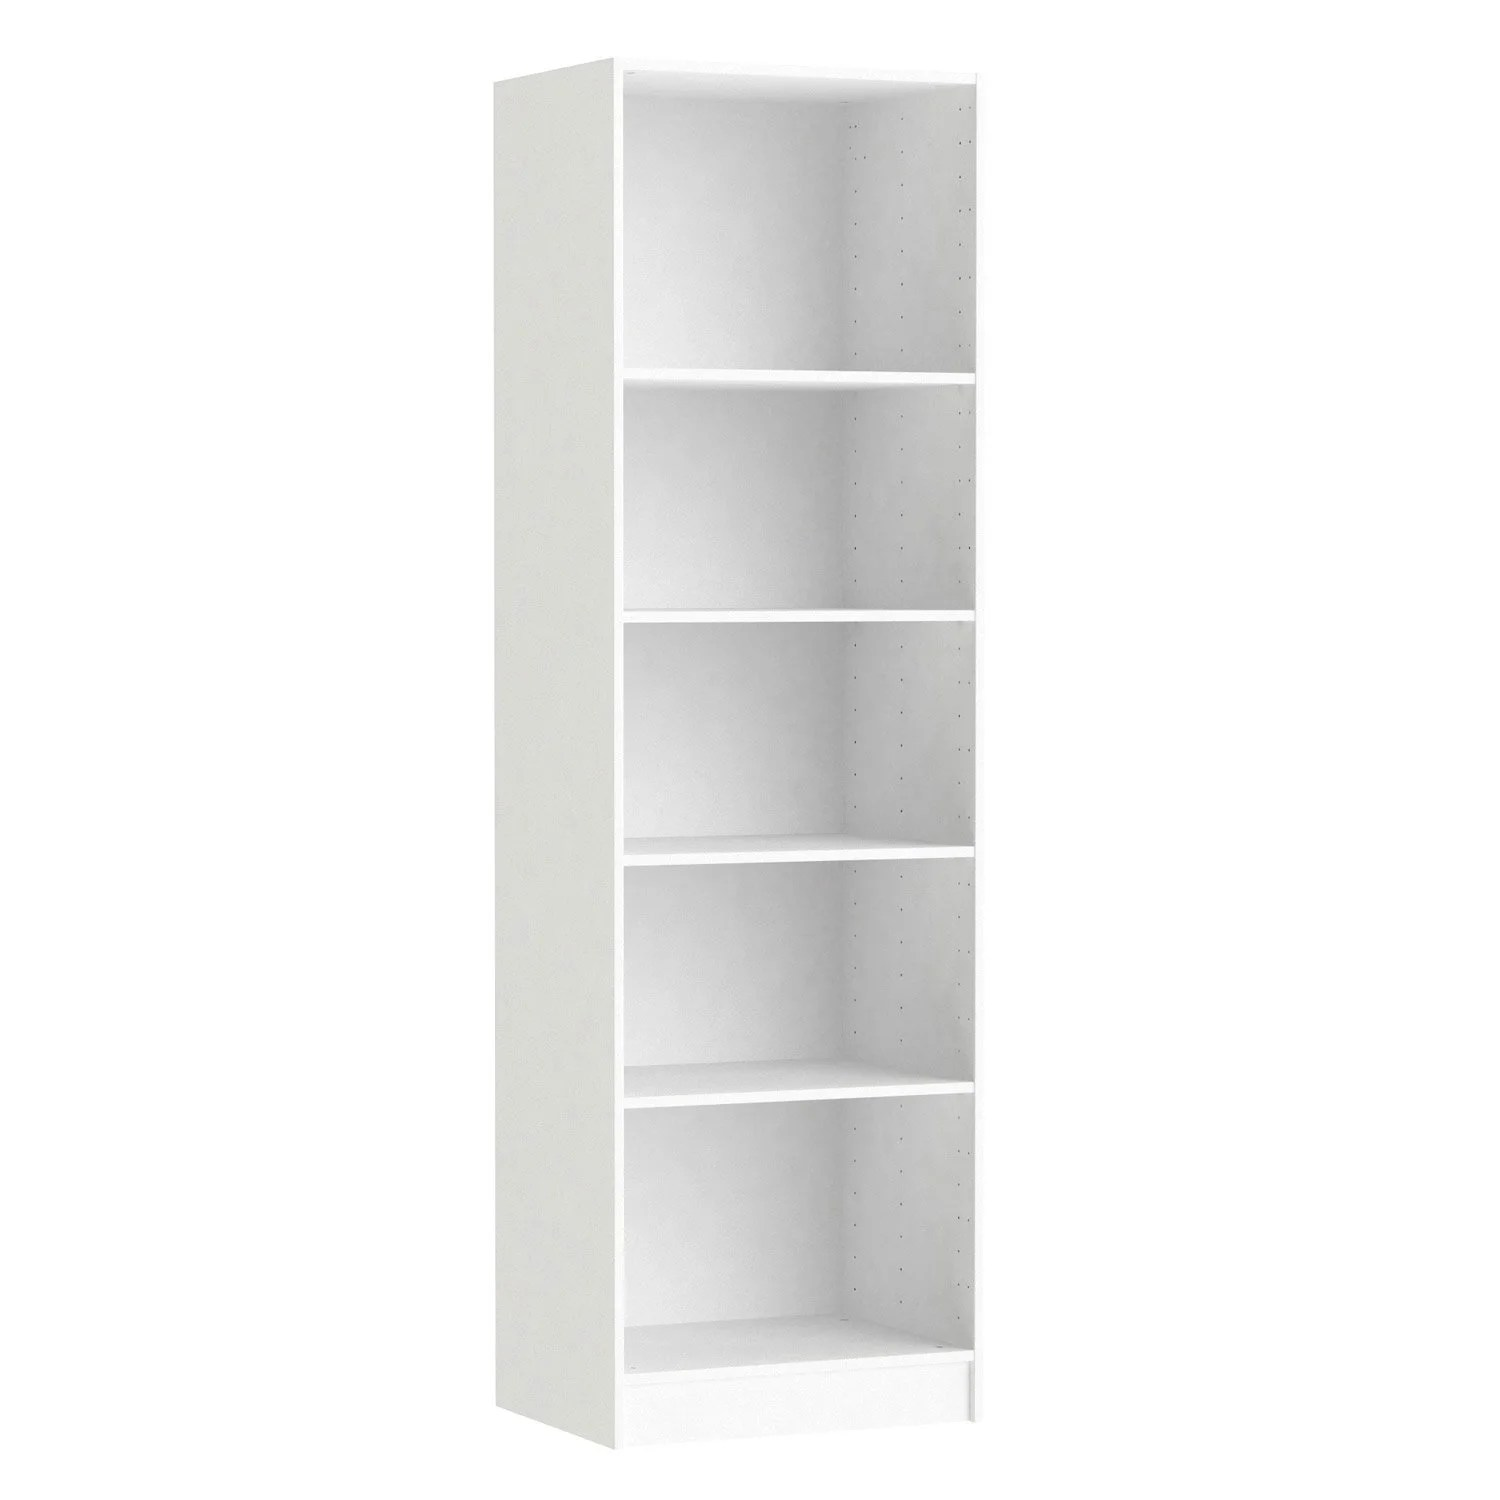 Spaceo Home Catalogue Caisson Spaceo Home 200 X 60 X 45 Cm Blanc